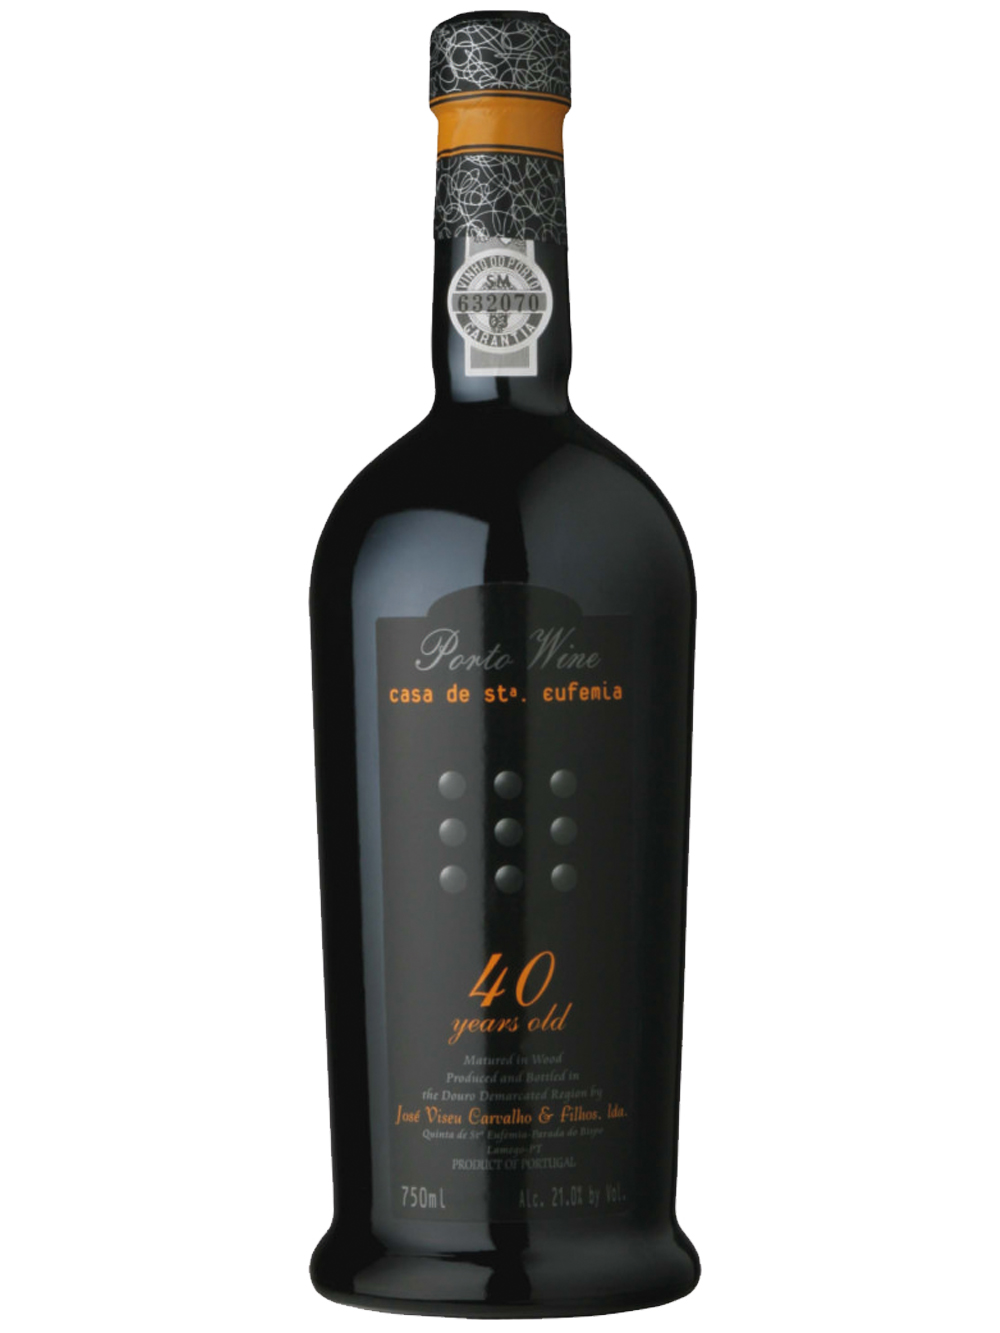 Tawny Port 40 Years Old